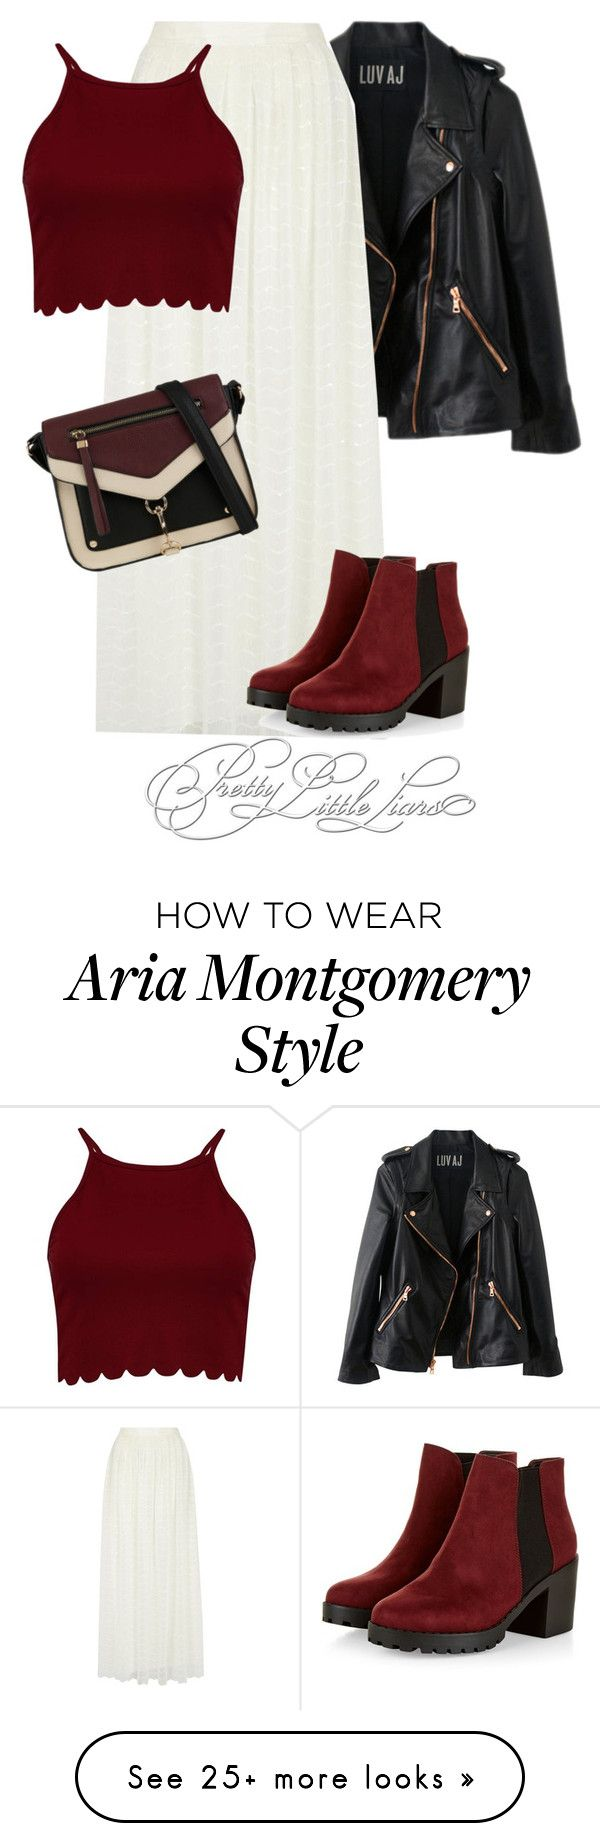 """Aria Montgomery inspired outfit"" by vane-abreu on Polyvore featuring Rosegold, Alice + Olivia, Boohoo and Call it SPRING"